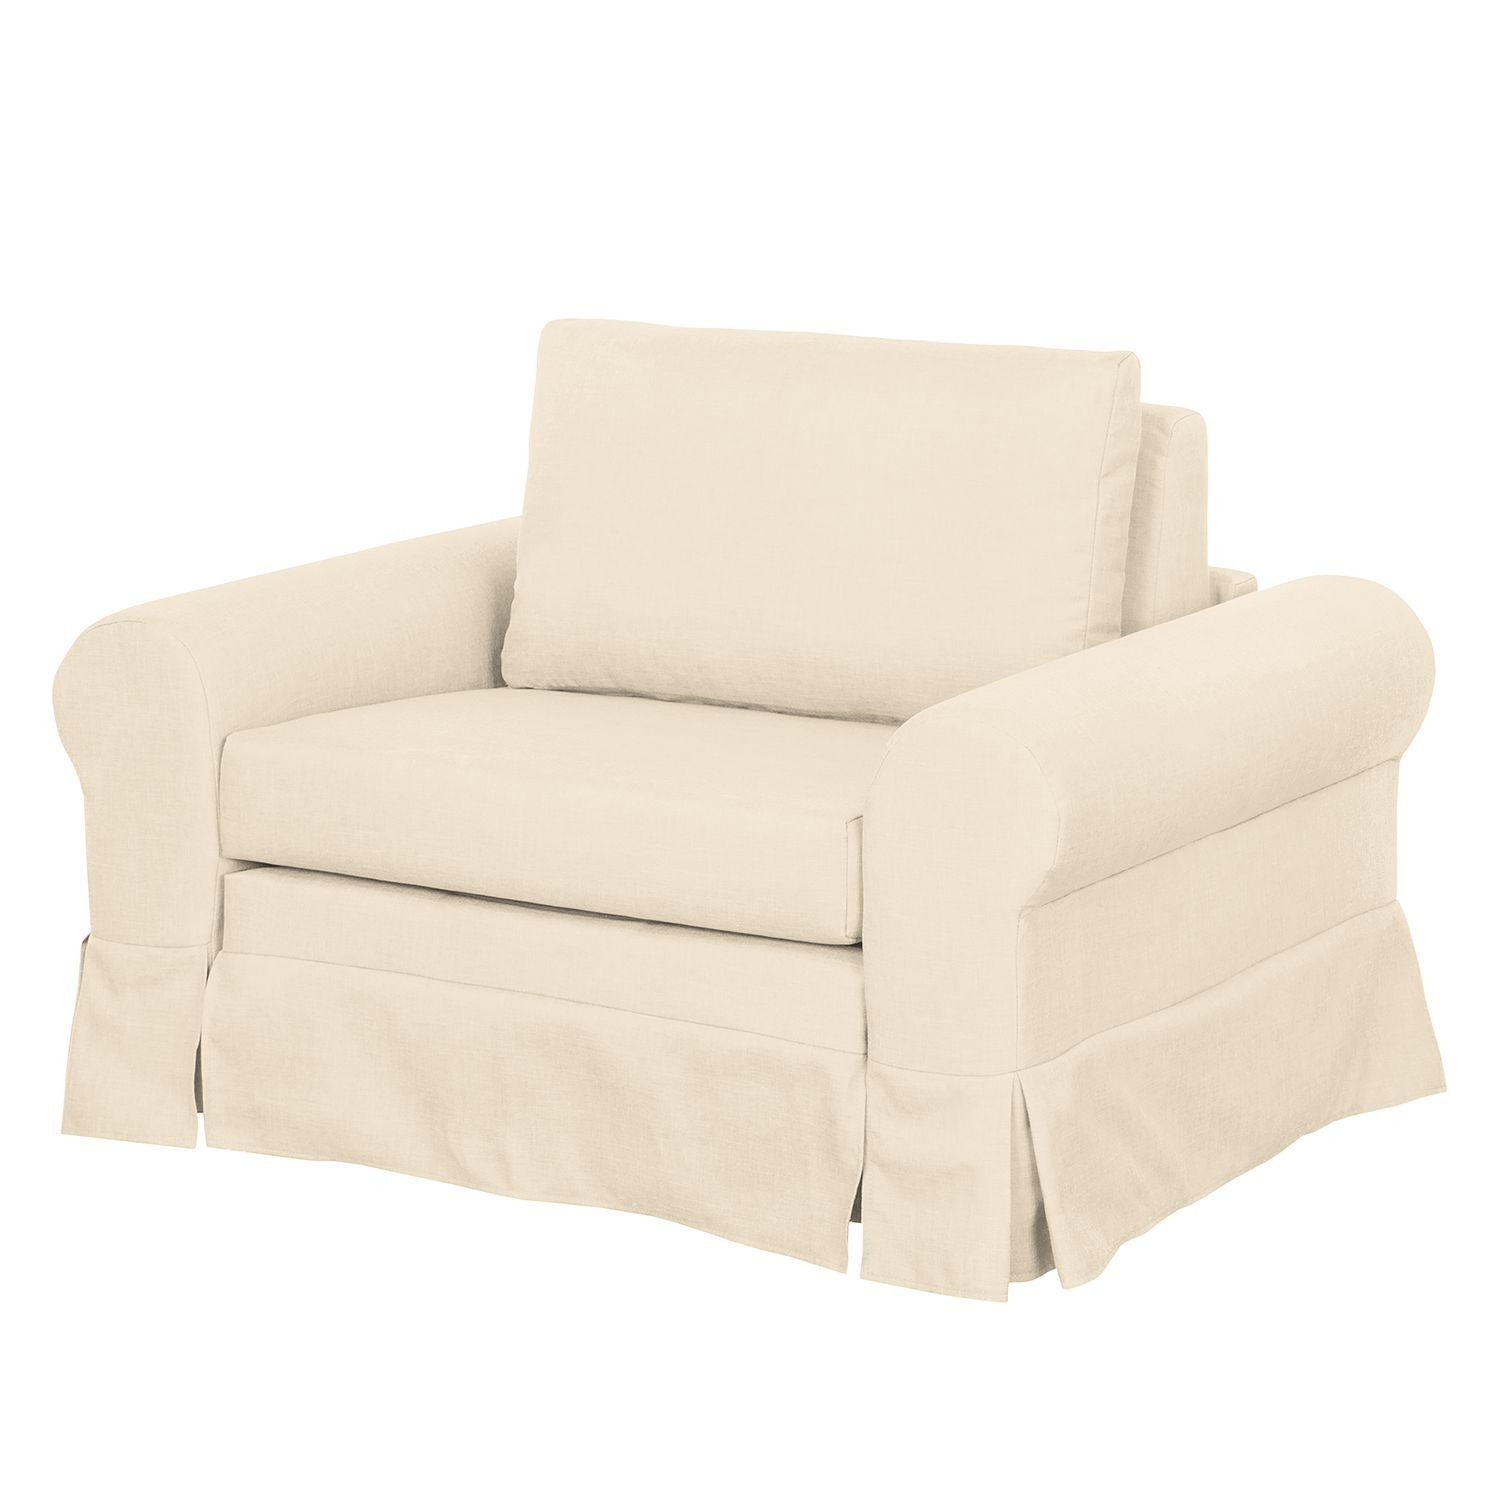 Fauteuil convertible Latina IV - Tissu - Crème, mooved